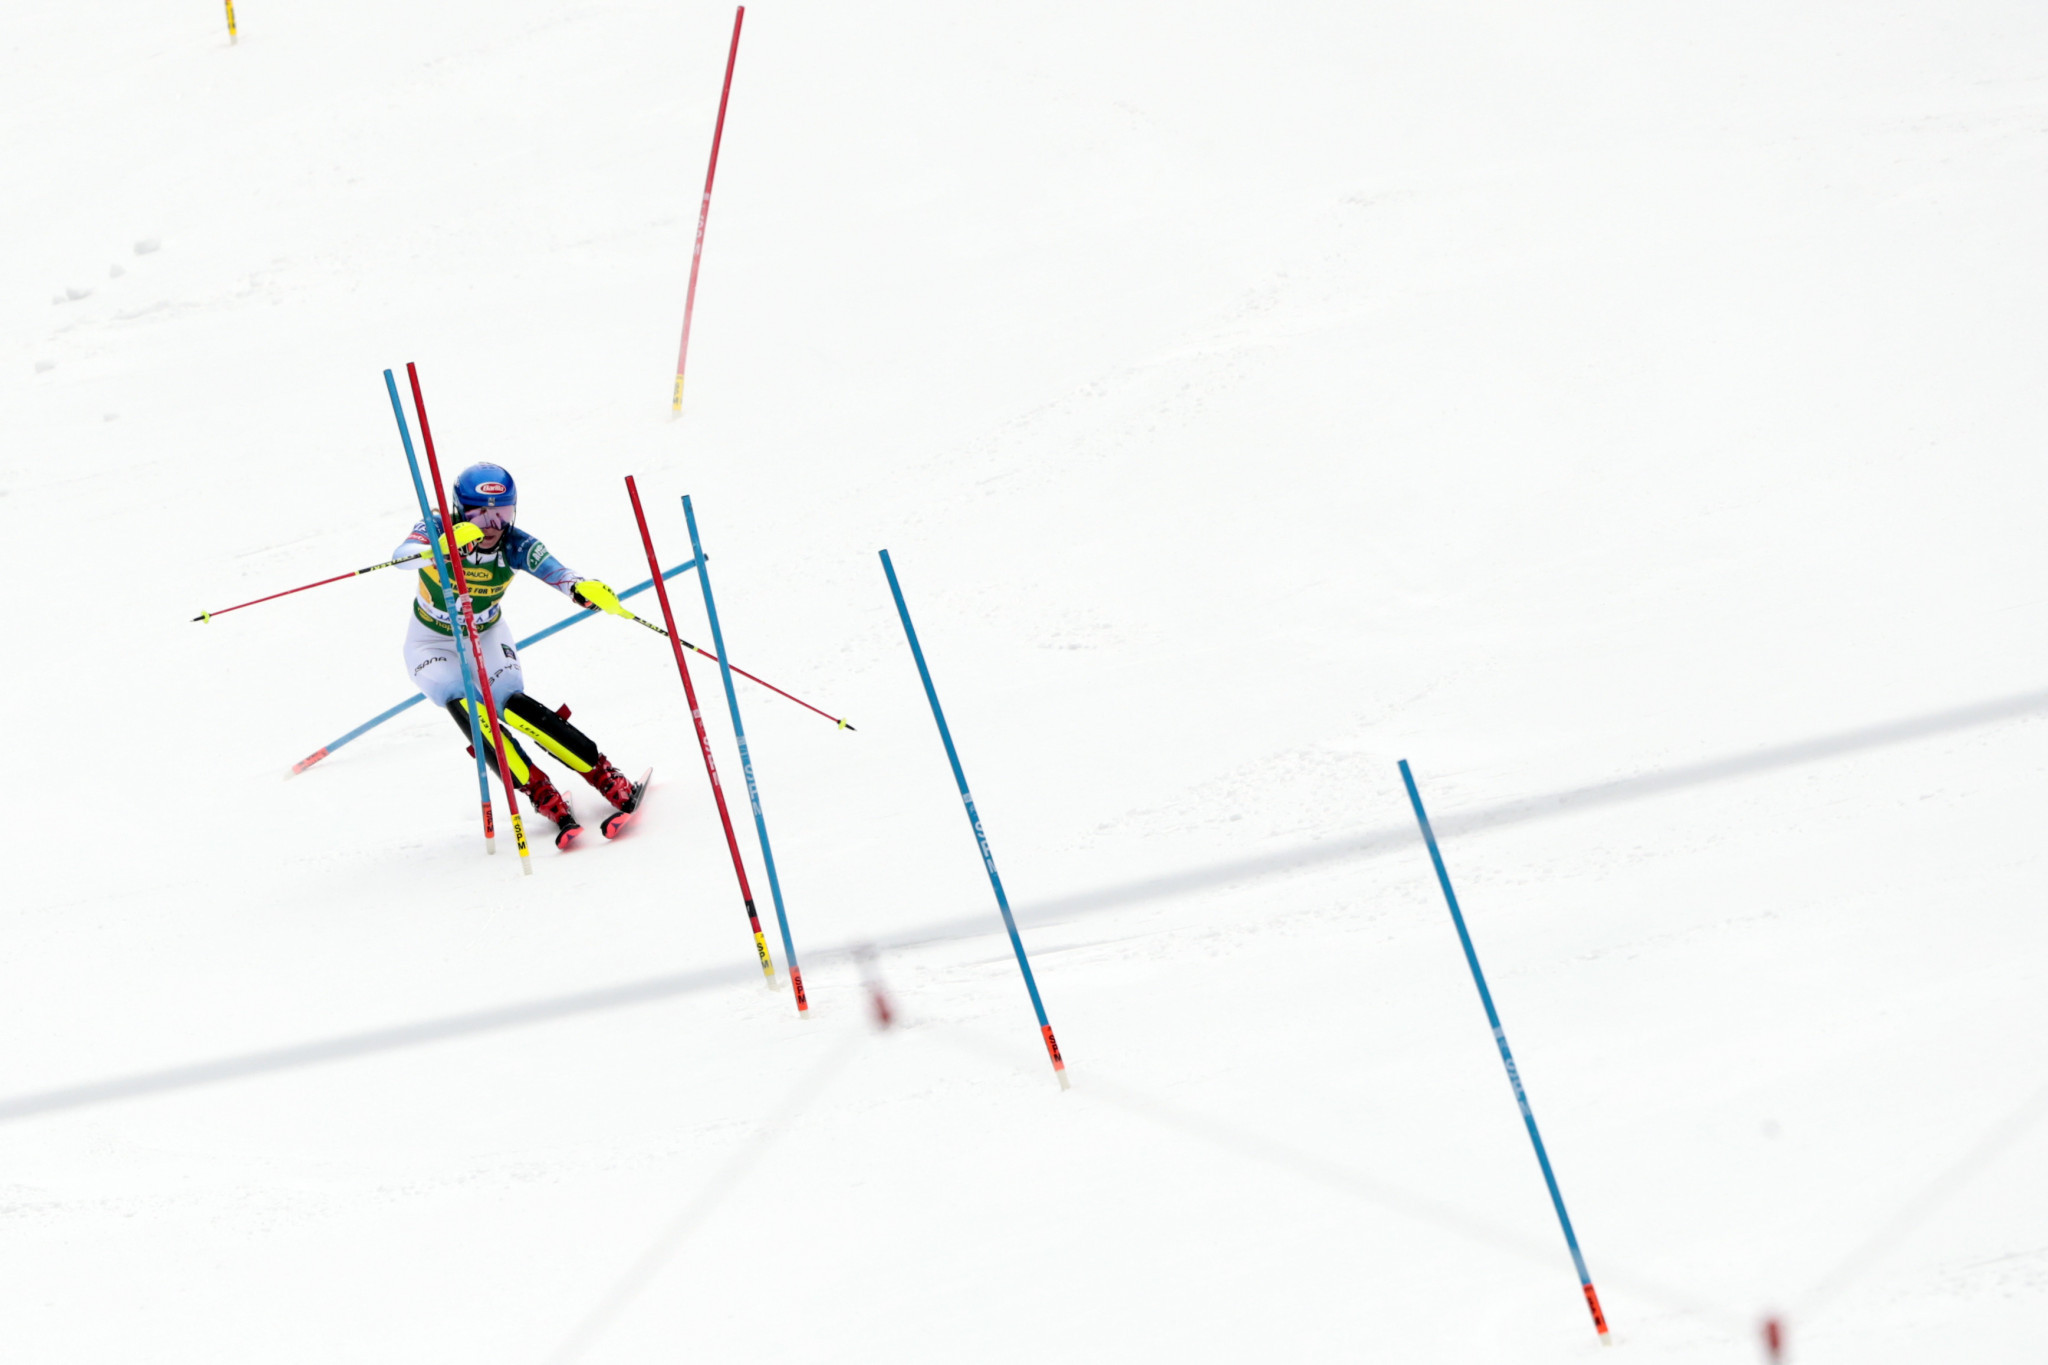 Mikaela Shiffrin produced a strong final run to overtake Petra Vlhová ©Getty Images